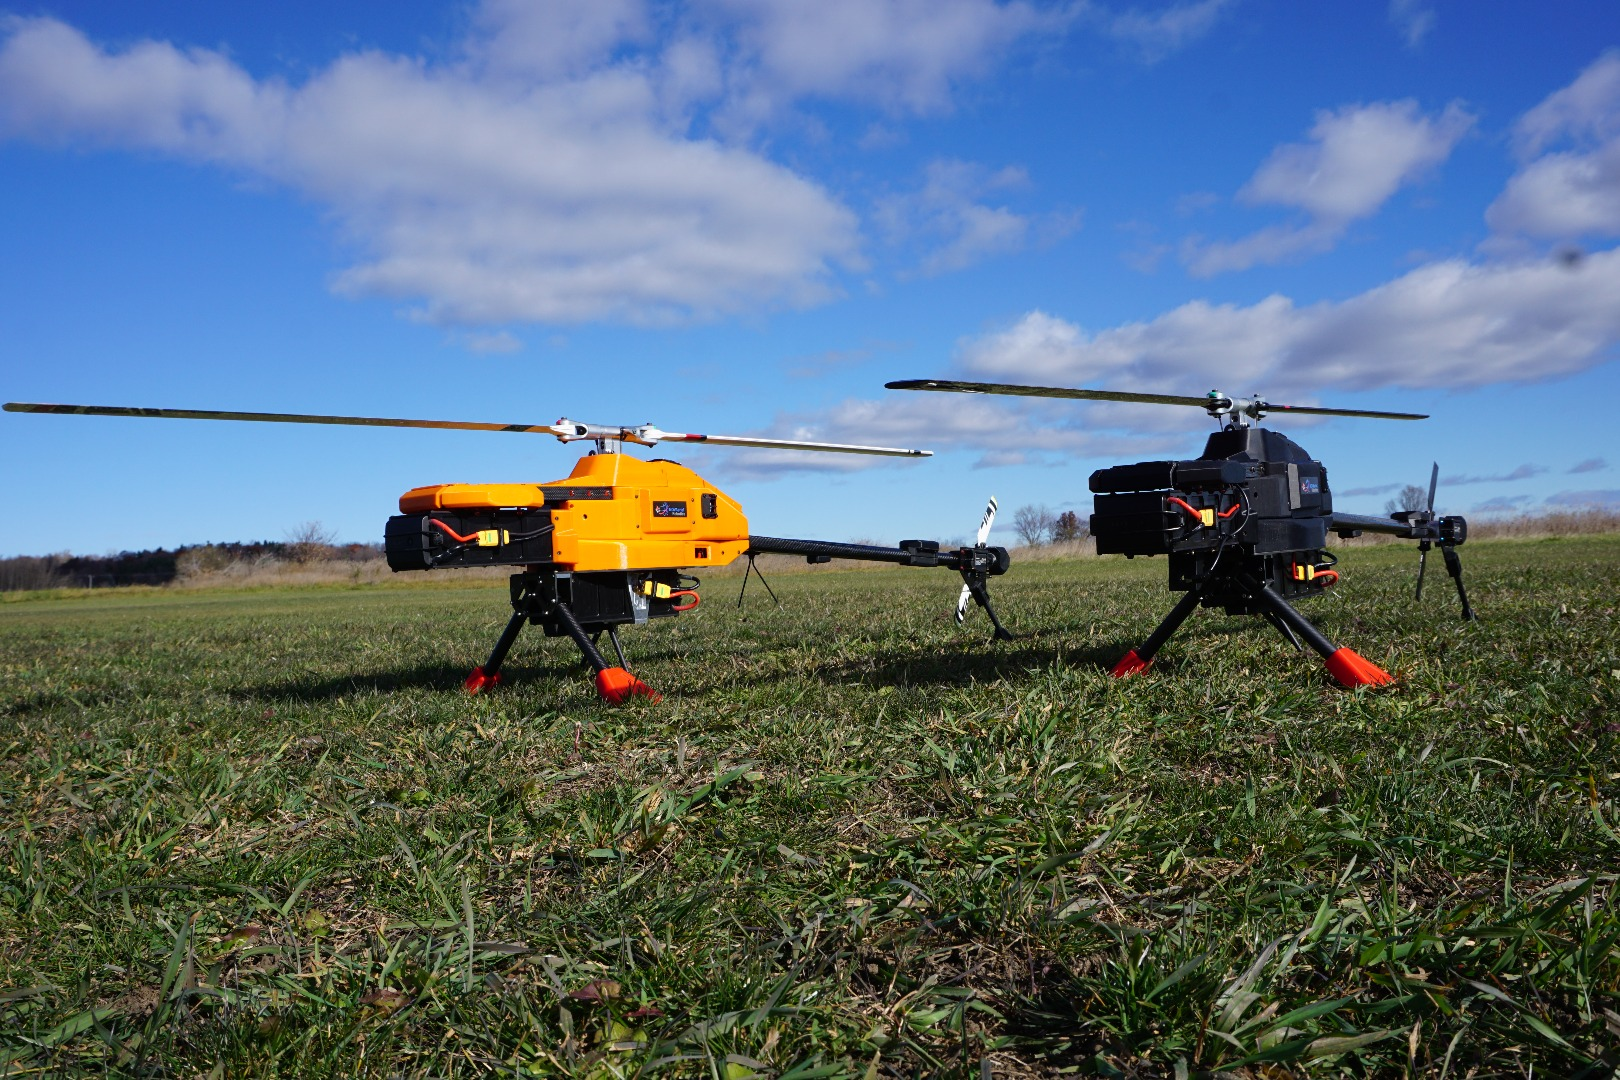 NOVAerial's helicopter drones: Better than multicopters?